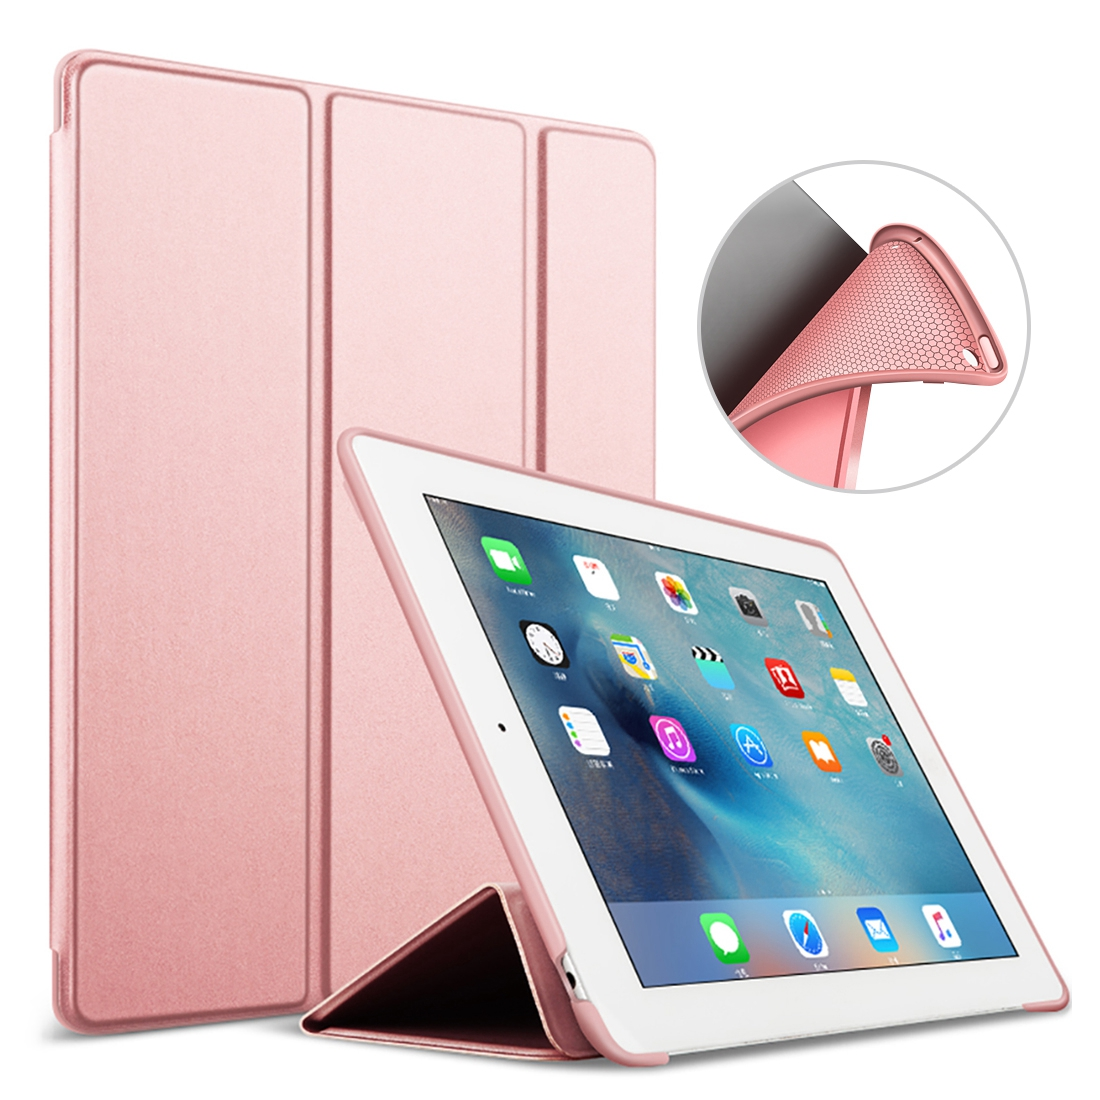 sports shoes 2d8c8 91556 For Apple Ipad Air 2 Case Cover 9.7 Inch PU Leather With Silicone Soft Back  Case For Ipad Air 2 / Ipad 6 Funda A1566/A1567 Sleep